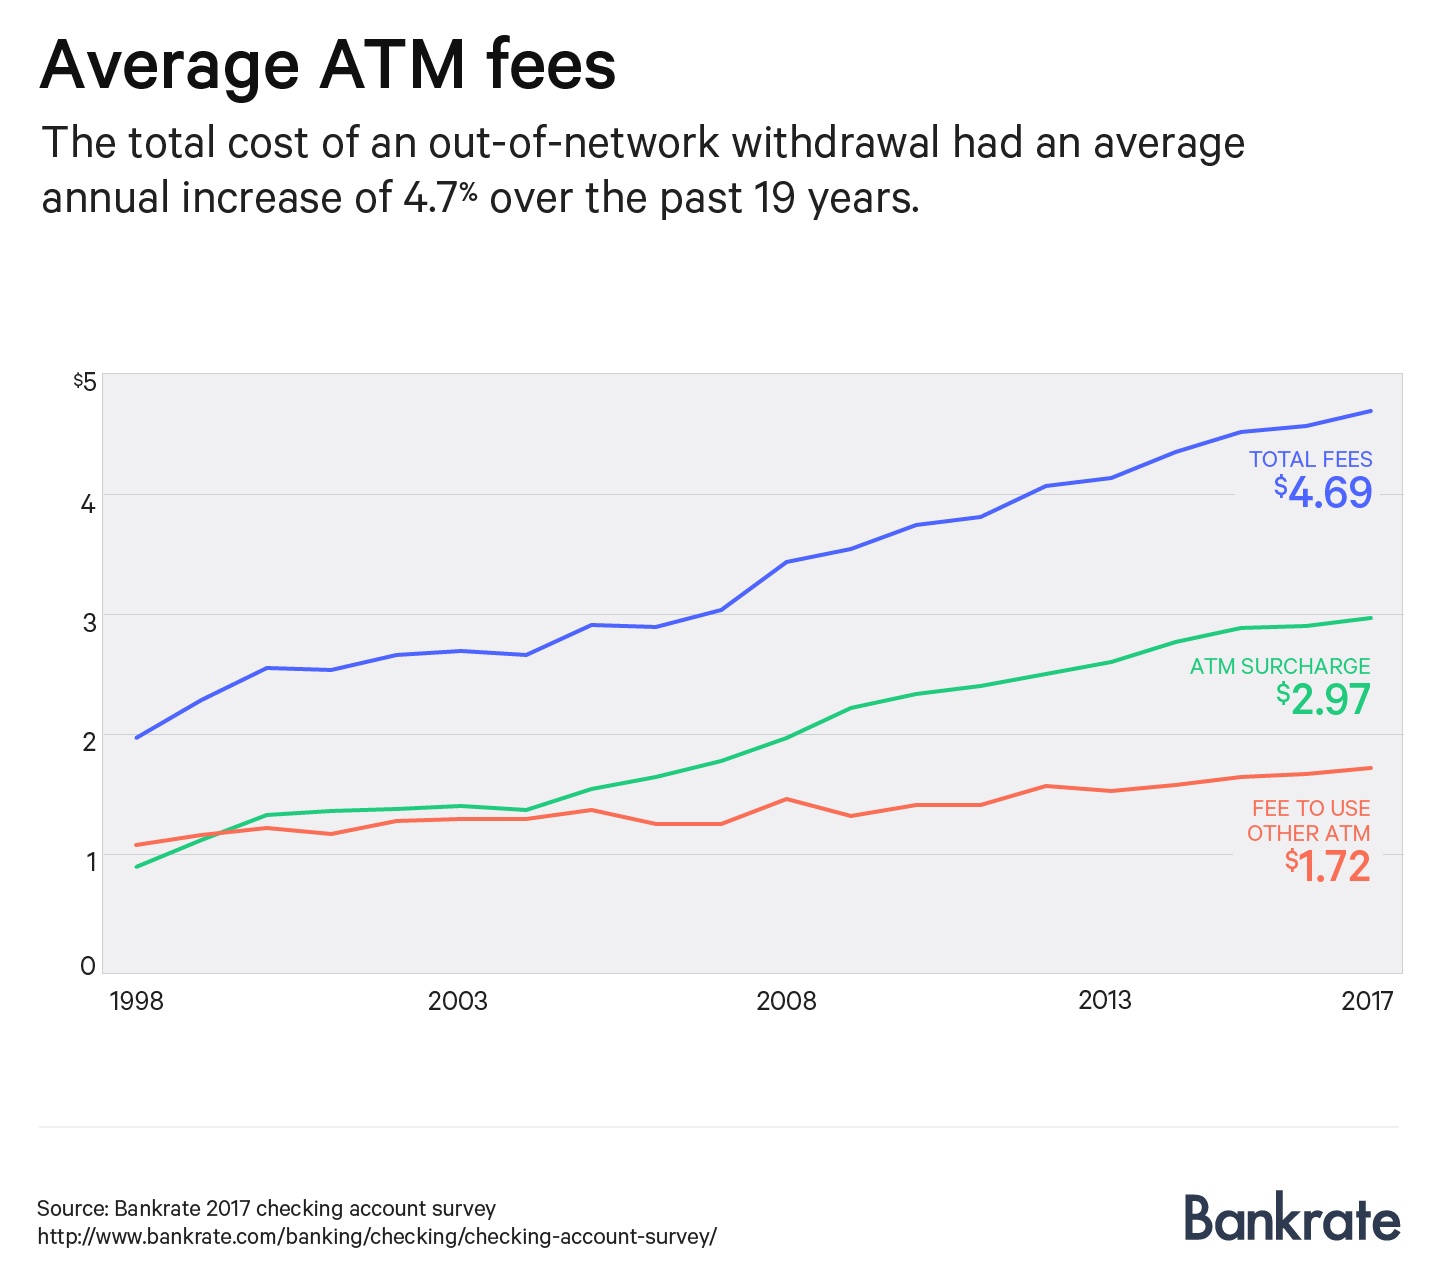 Chart showing the total fees charged for using an out-of-network ATM